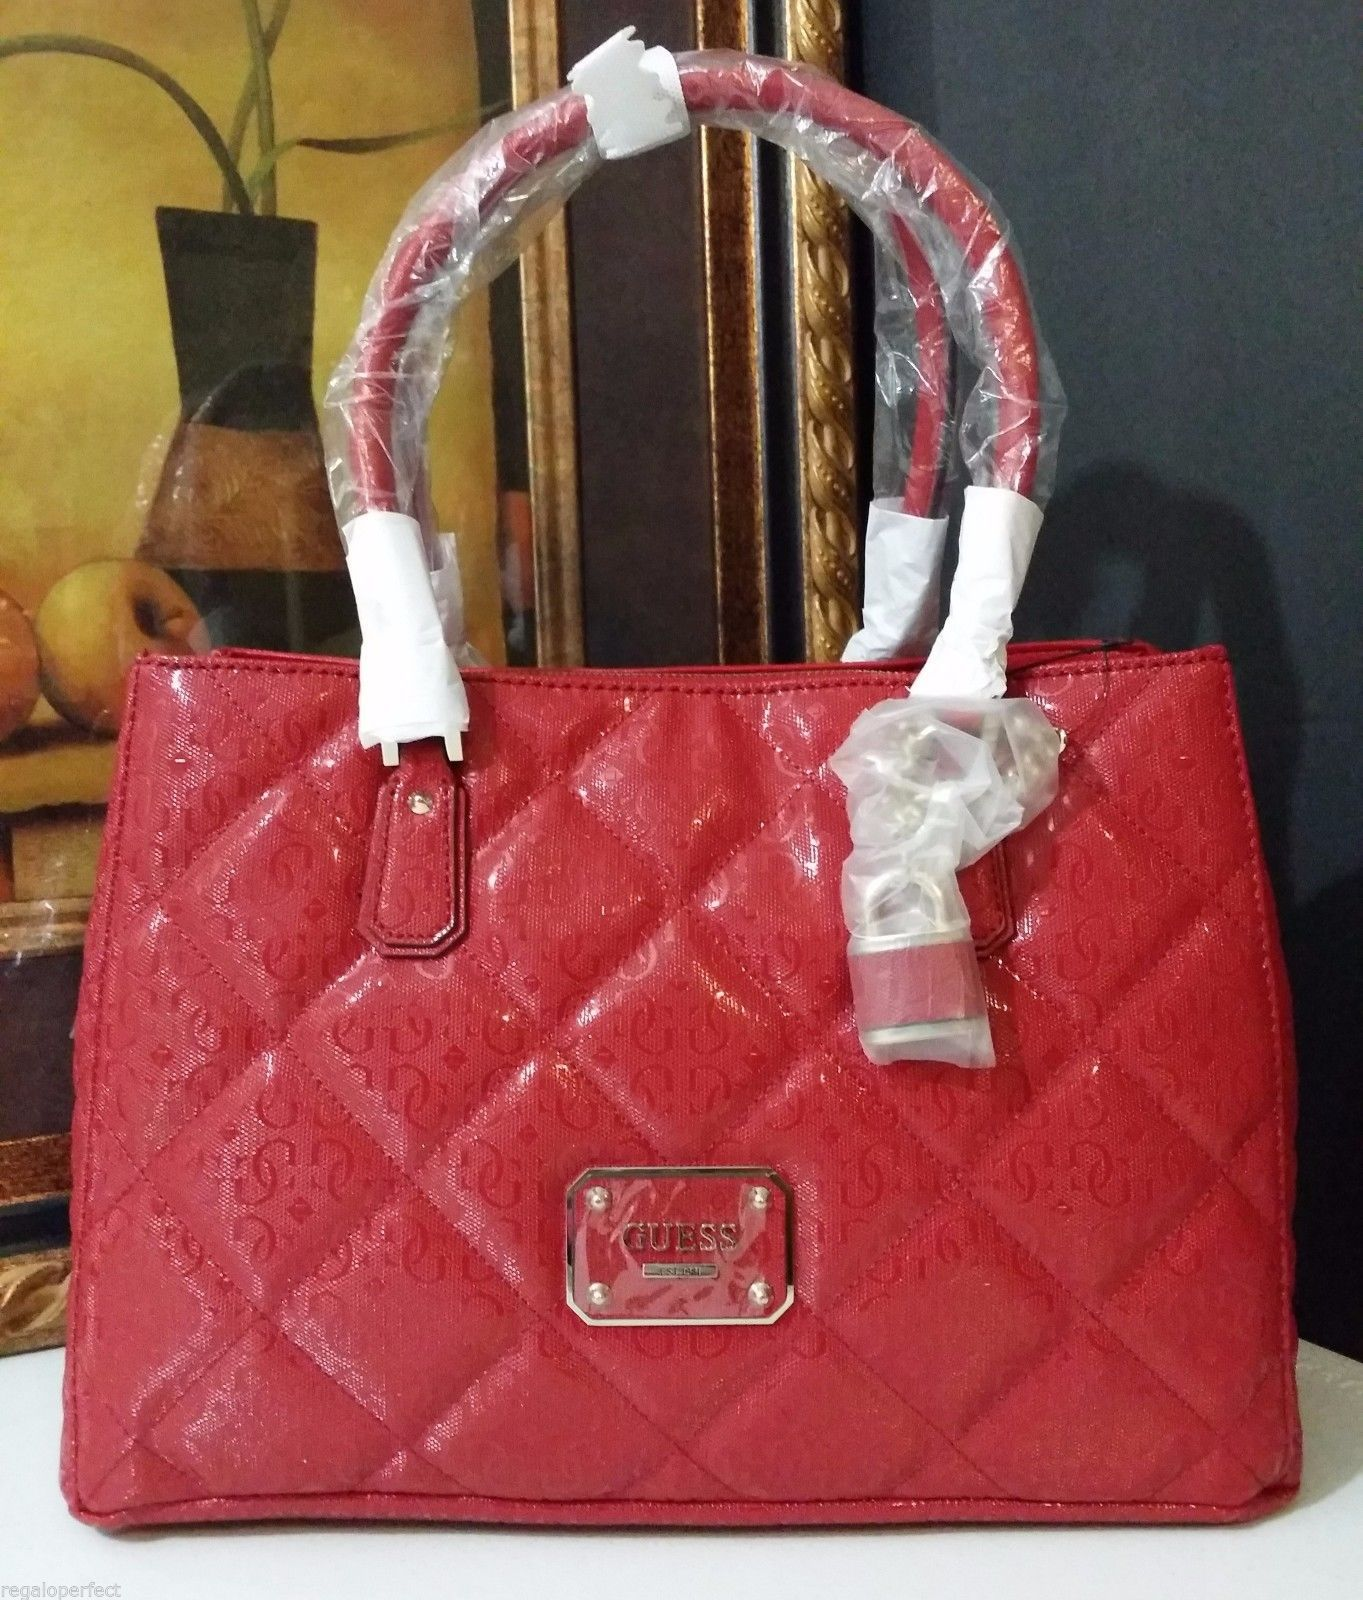 NWT GUESS Ophelia Girlfriend Satchel Lipstick SG456223